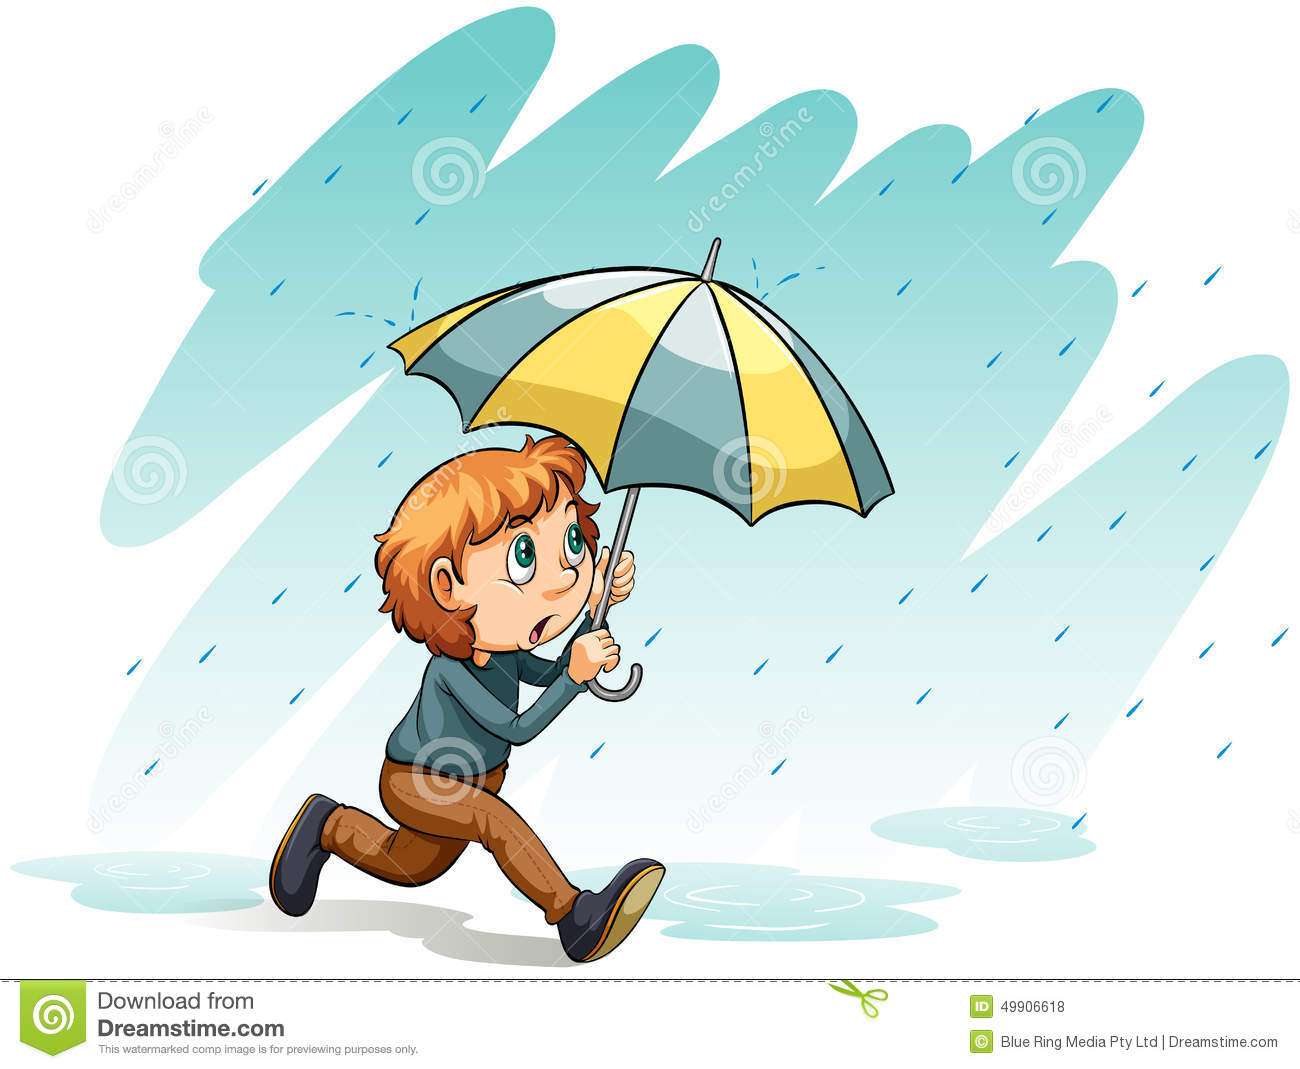 Stock Illustration Heavy Rain Idiom Showing White Background Image49906618 also 47535 Kunst Van Magritte Als Inspiratie Voor Een Dagje Shoppen furthermore Rihanna And Hassan Jameel Key Moments Timeline Relationship together with Archaeology On Strawberry Mountain also Dev X Julian Uncensored. on man opening door for